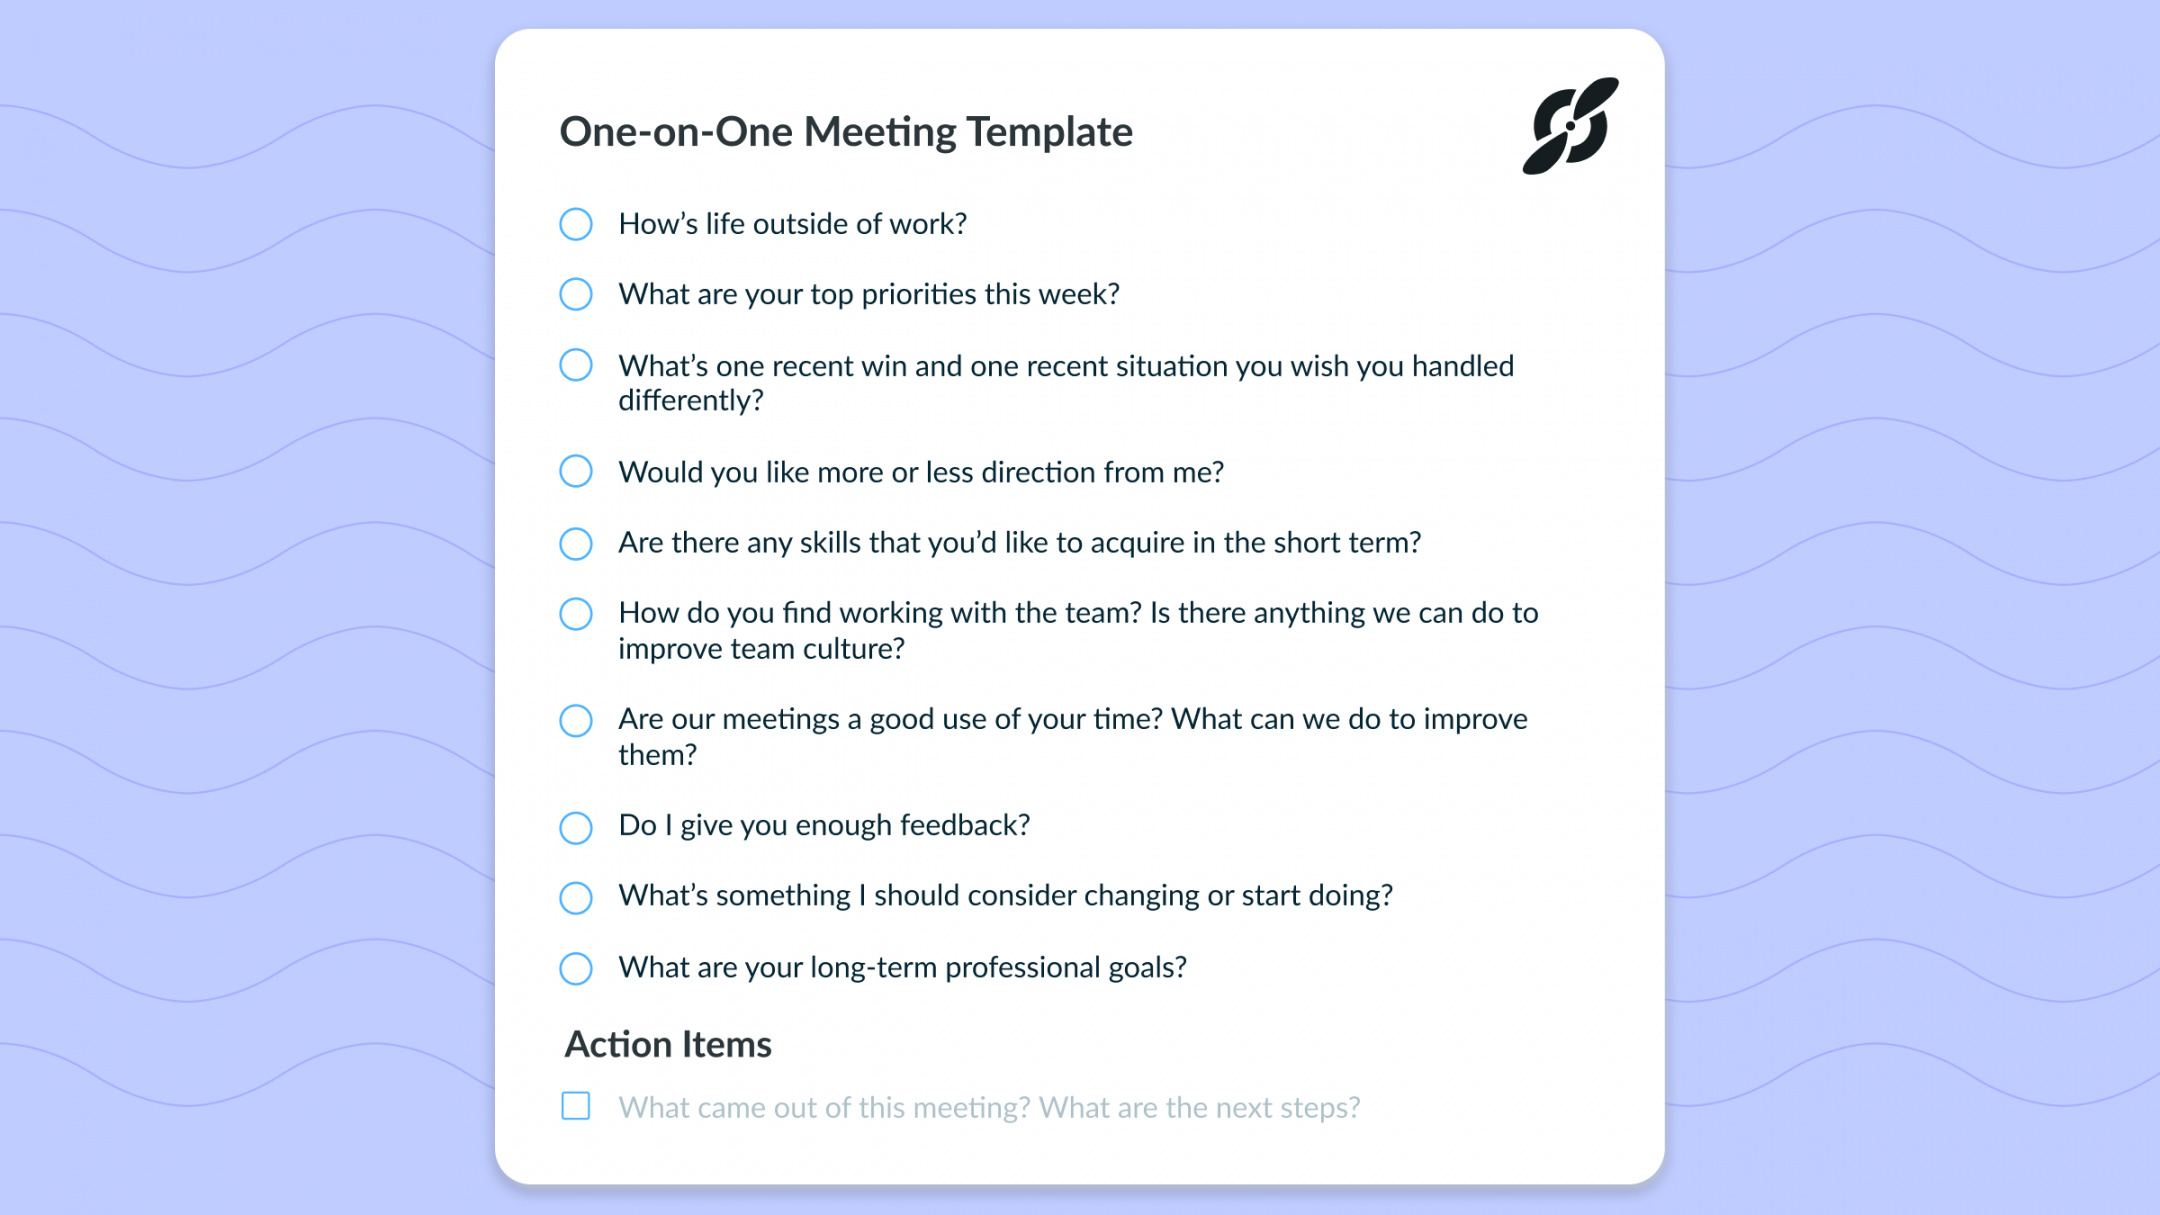 free one on one meeting template top 10 questions great managers one on one meeting agenda template free word